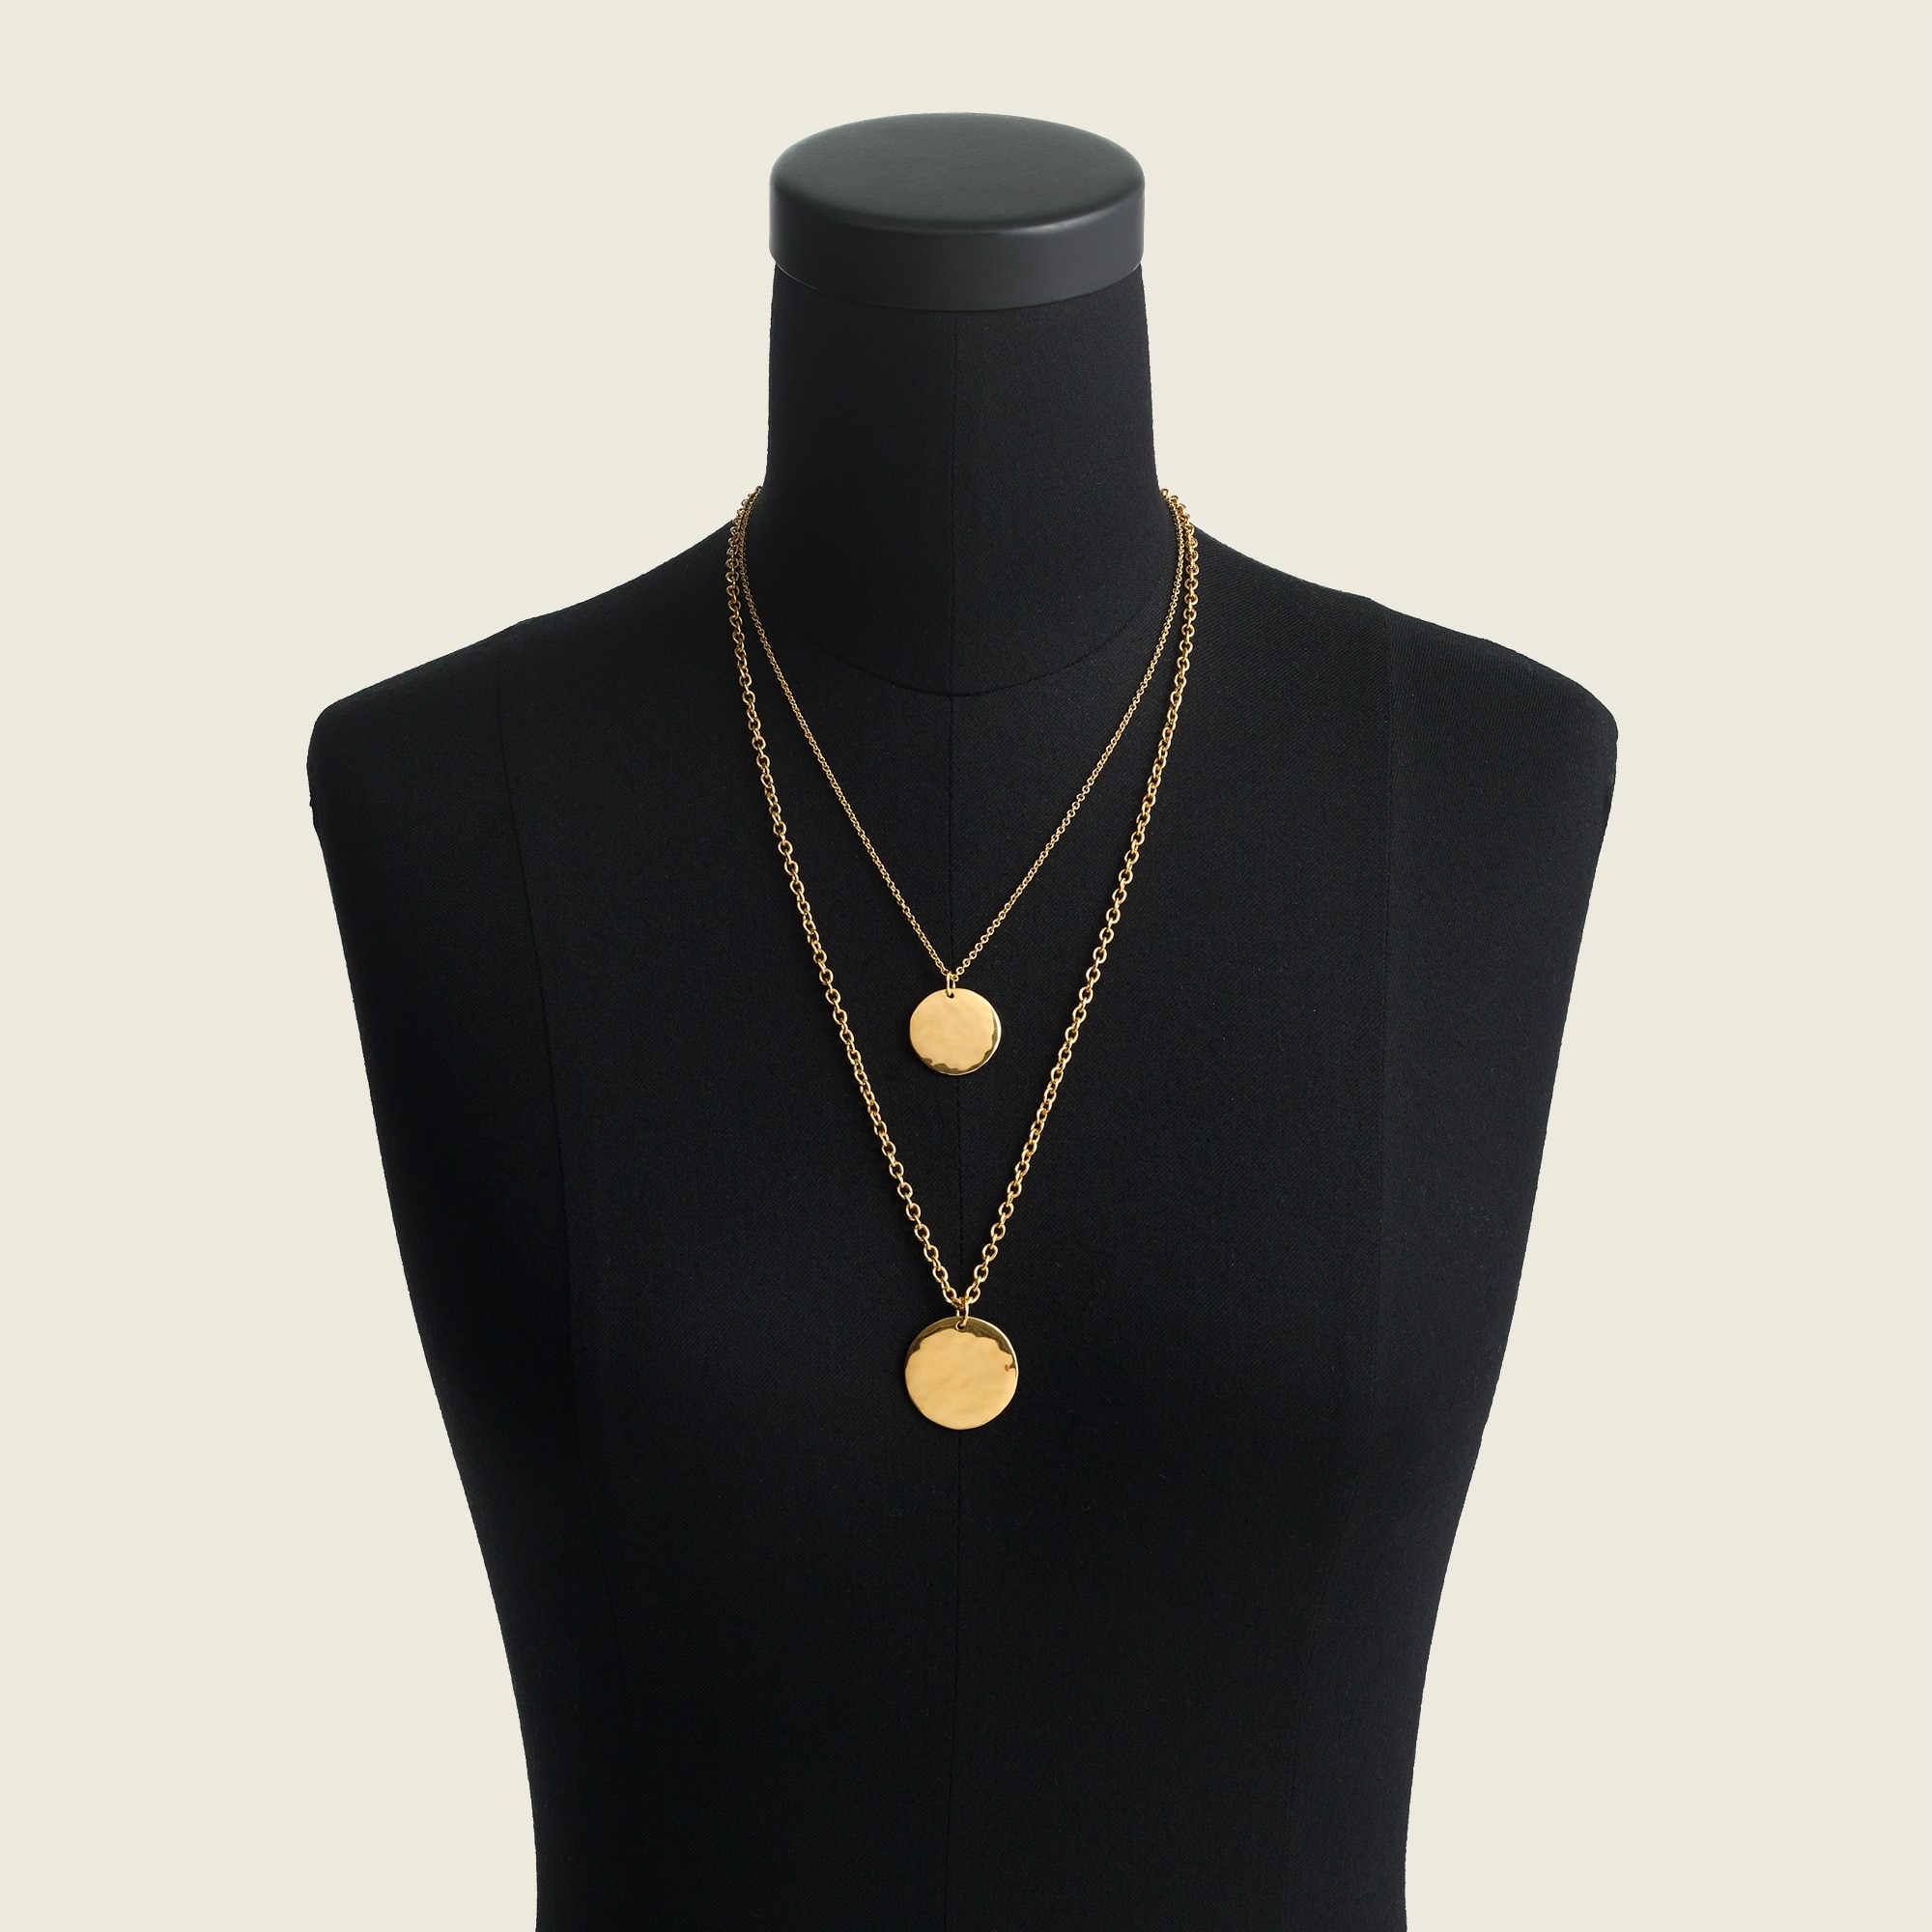 women's layered coin necklace - women's jewelry